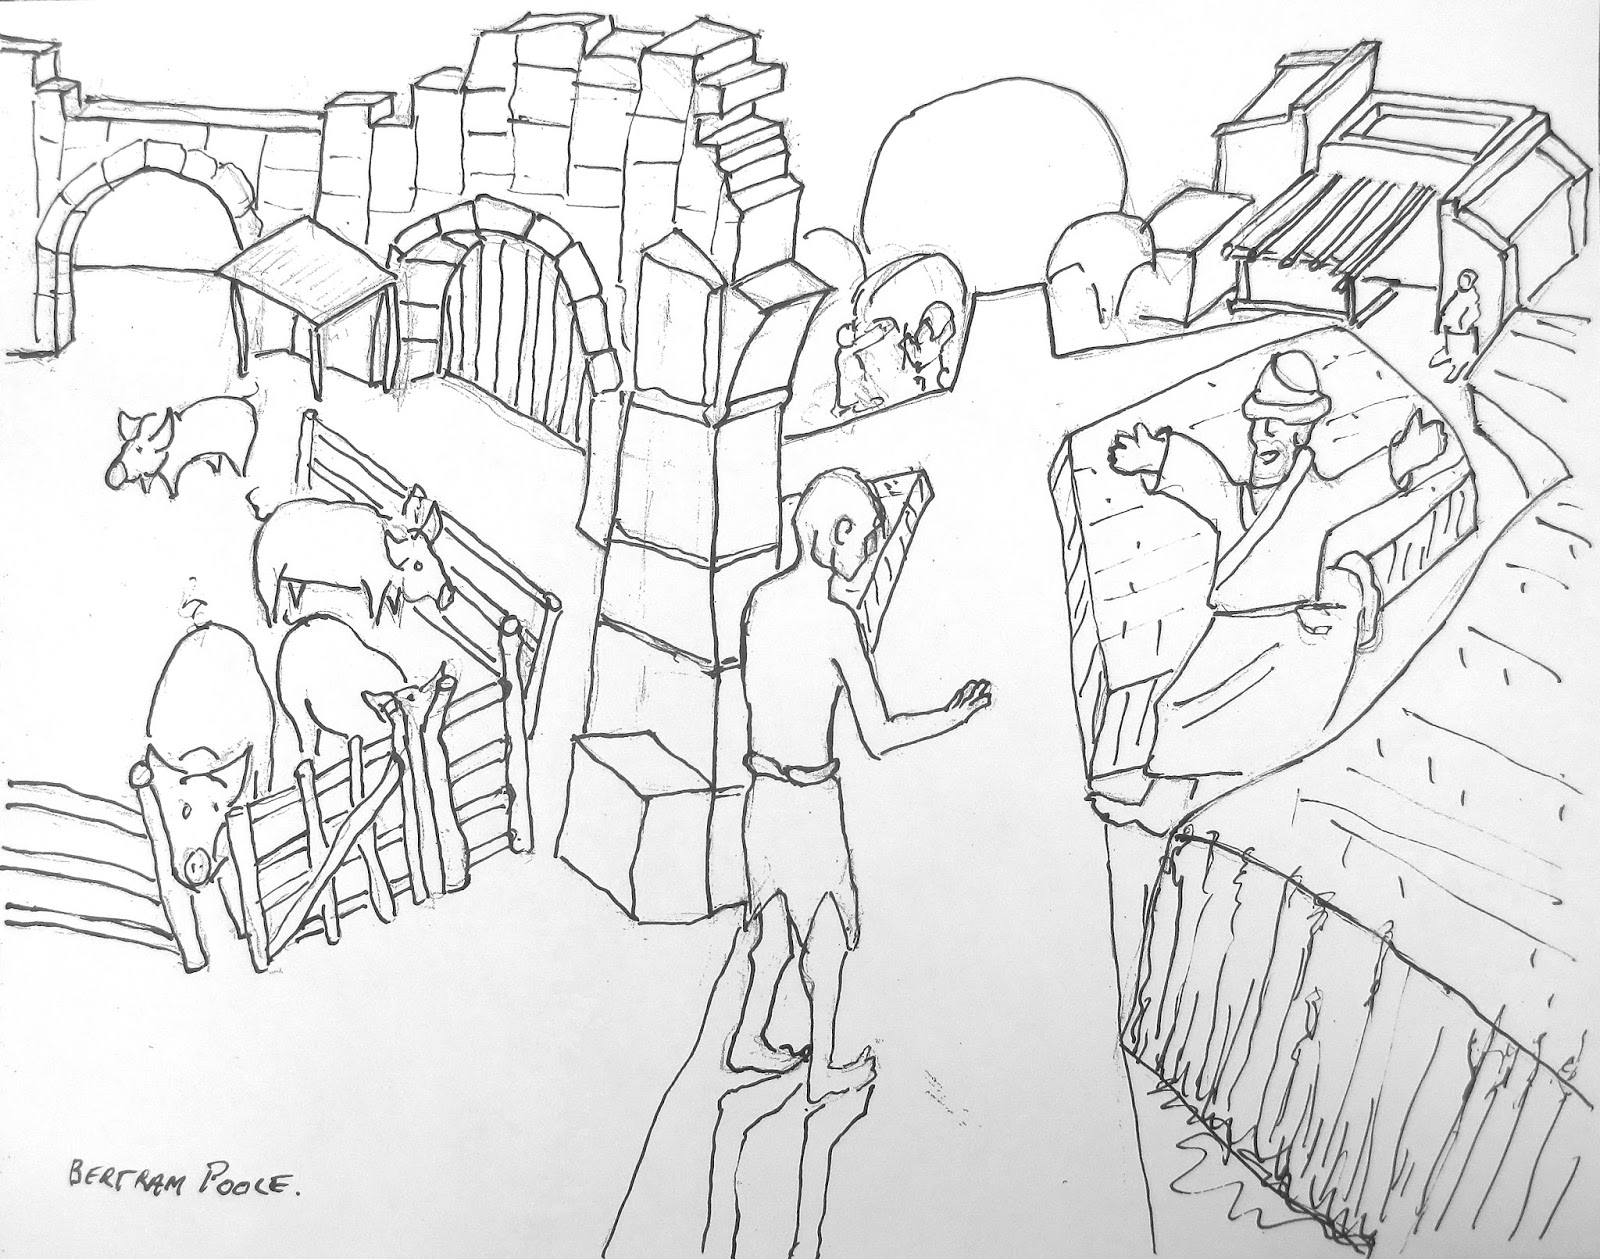 Christian Art Now Prodigal Son Parable Drawing Bertram Poole